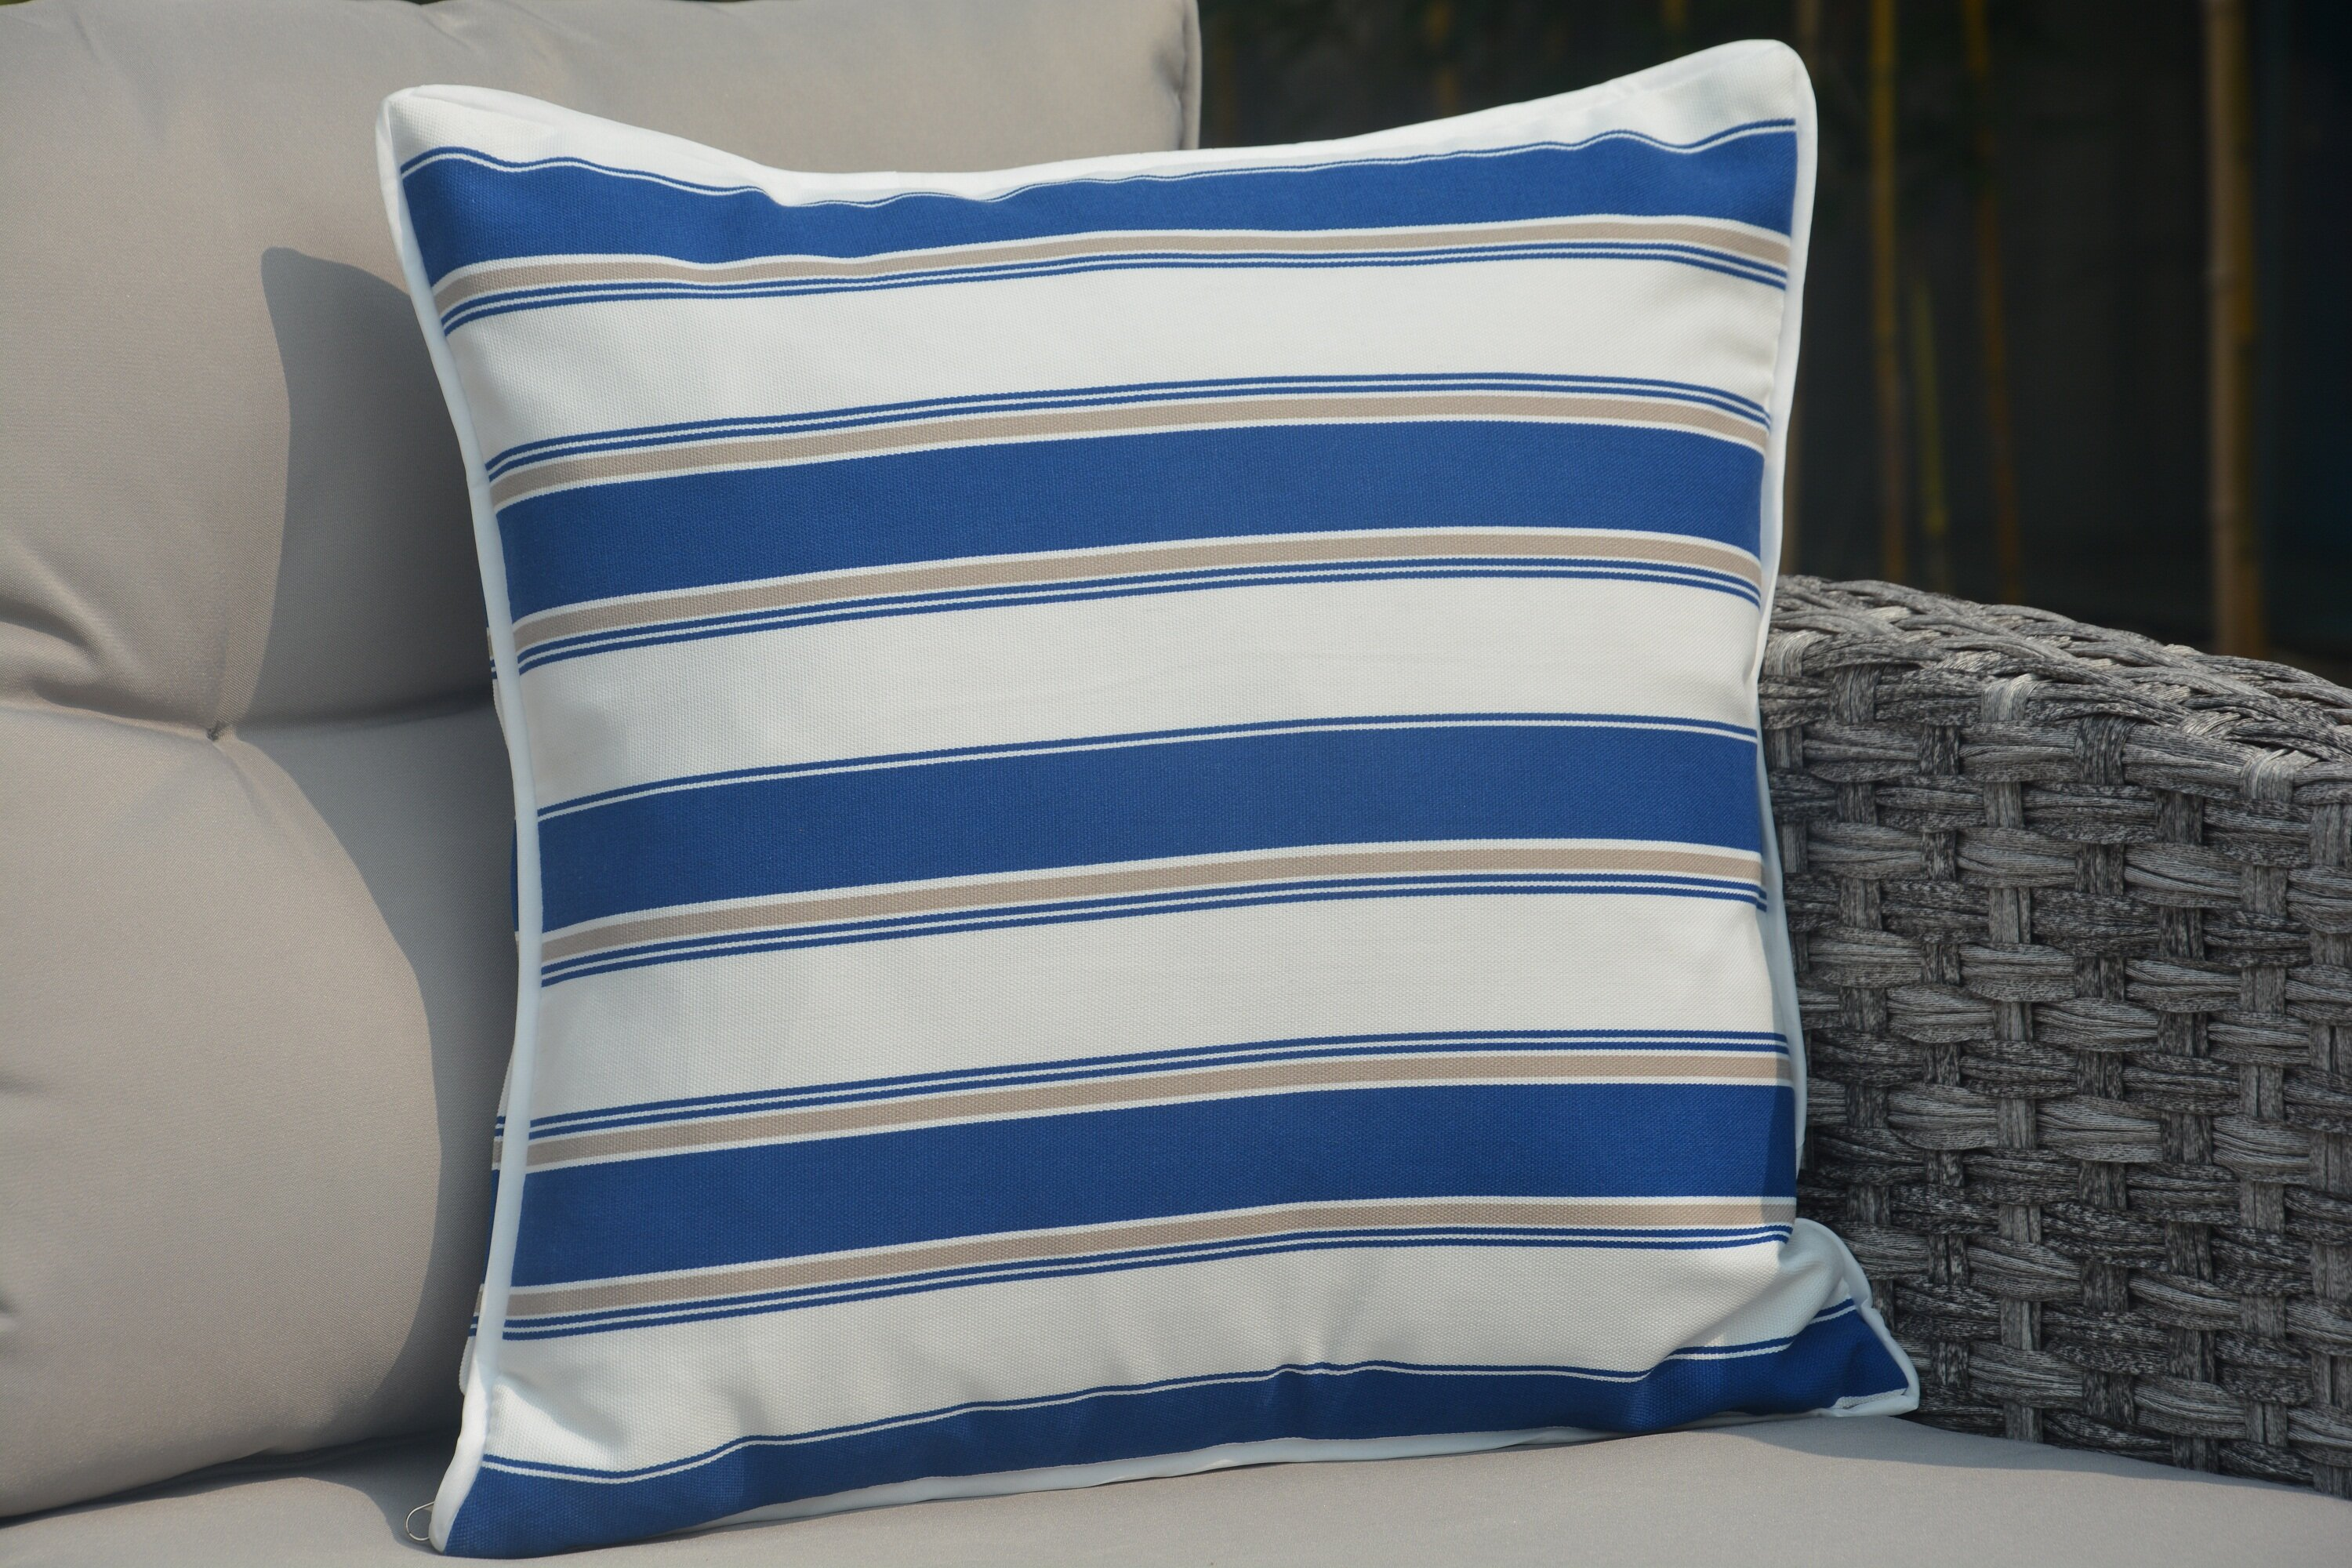 Red Barrel Studio Beckett Striped Outdoor Throw Pillow Wayfair